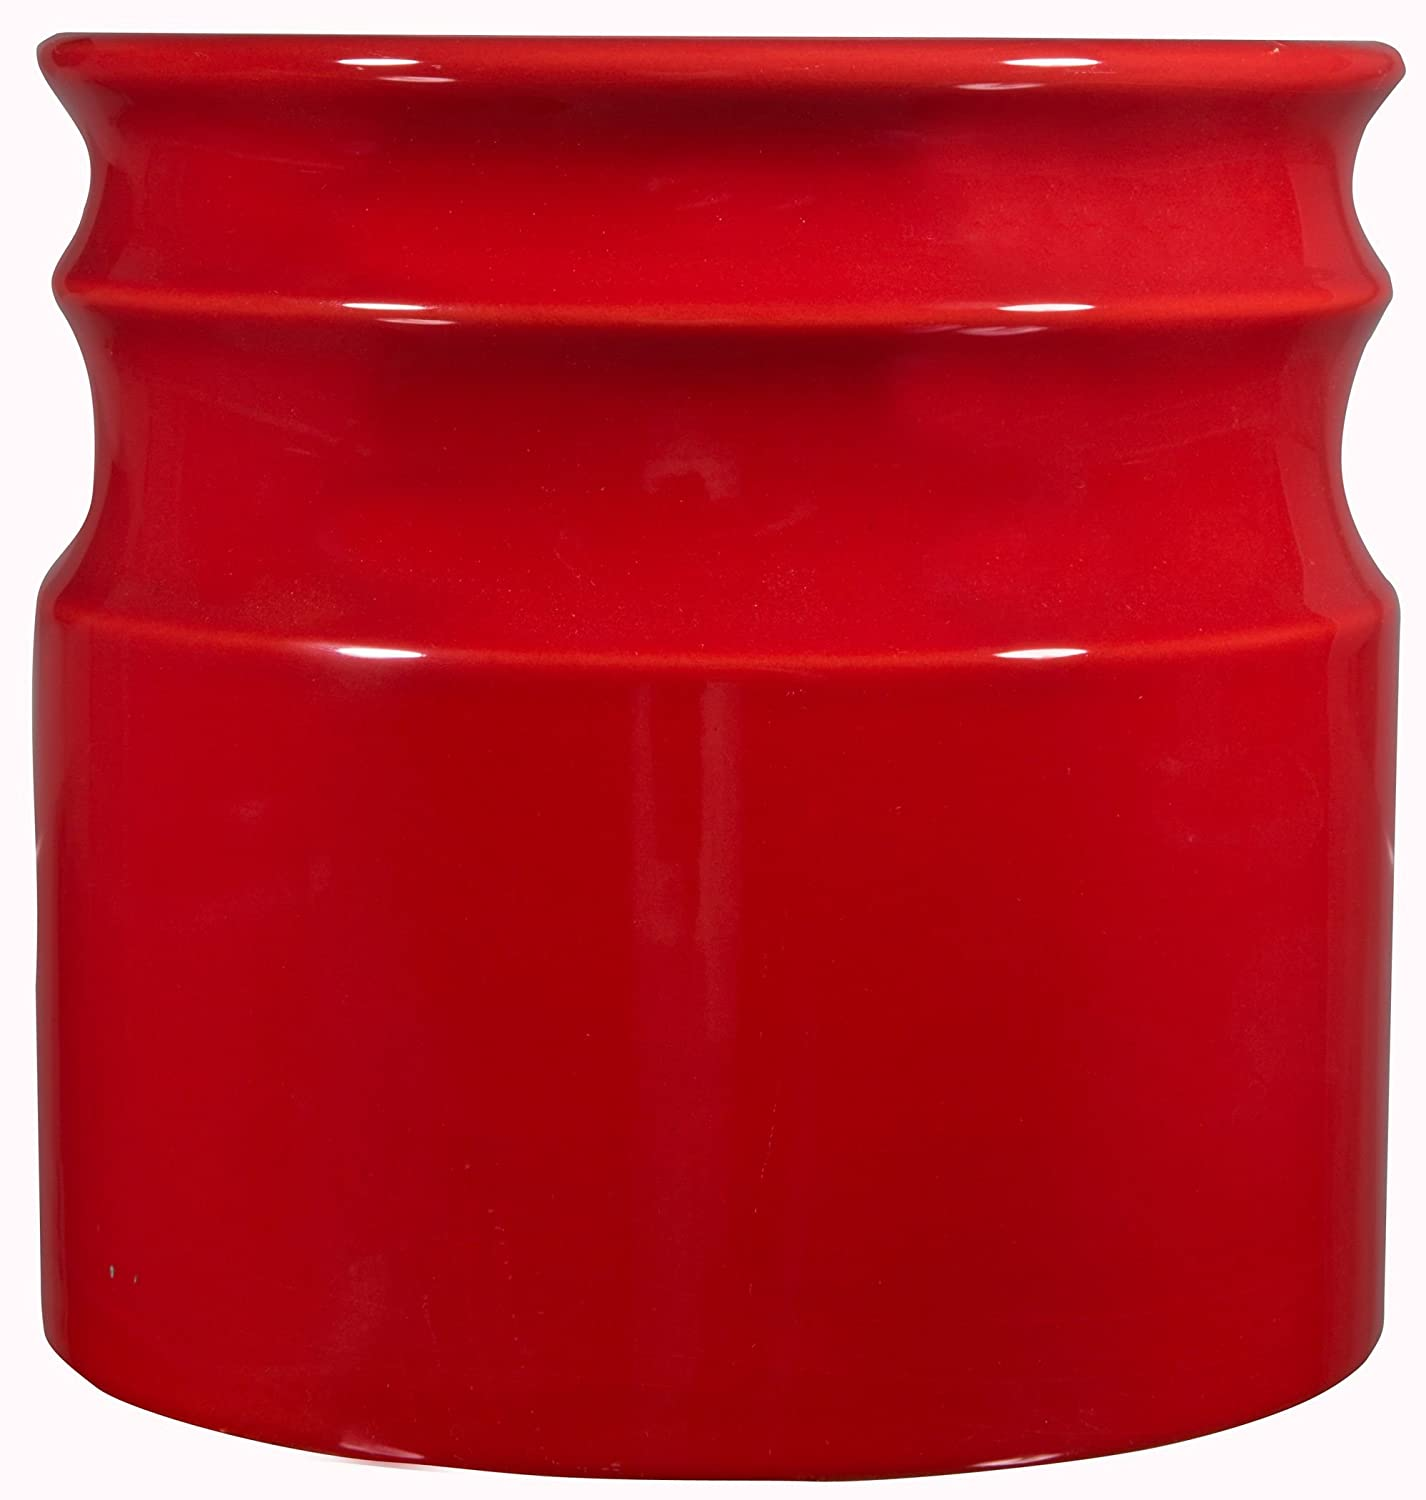 Home Essentials Beyond 66379 Turino Rings Utensil Crock 7.5 D inch , Red